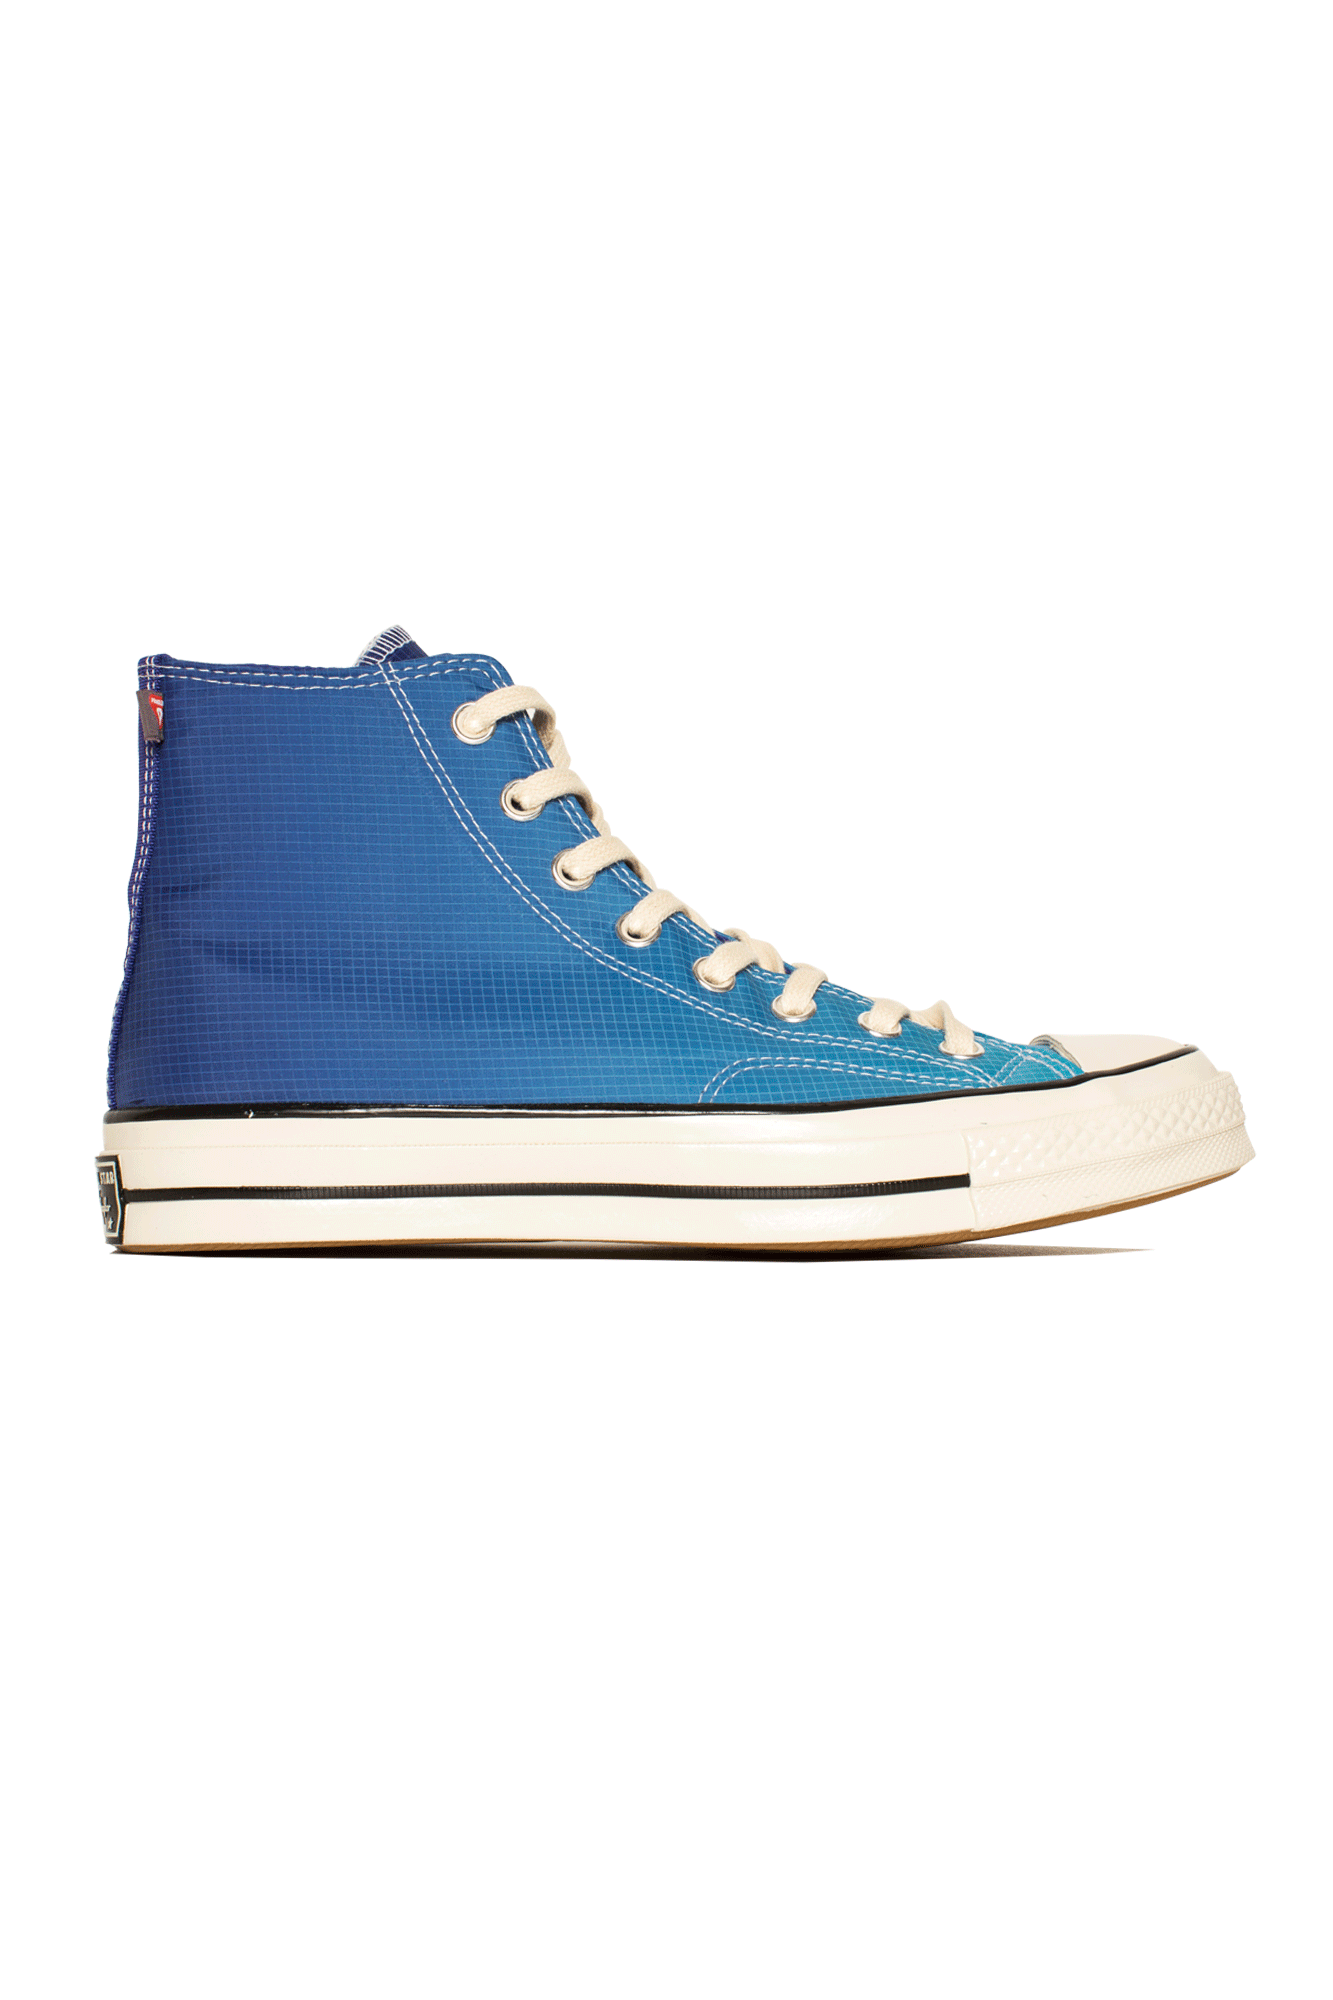 "Converse Sneakers Chuck 70 Hi ""Primaloft"" Blue 168112C#000#432#7 - One Block Down"